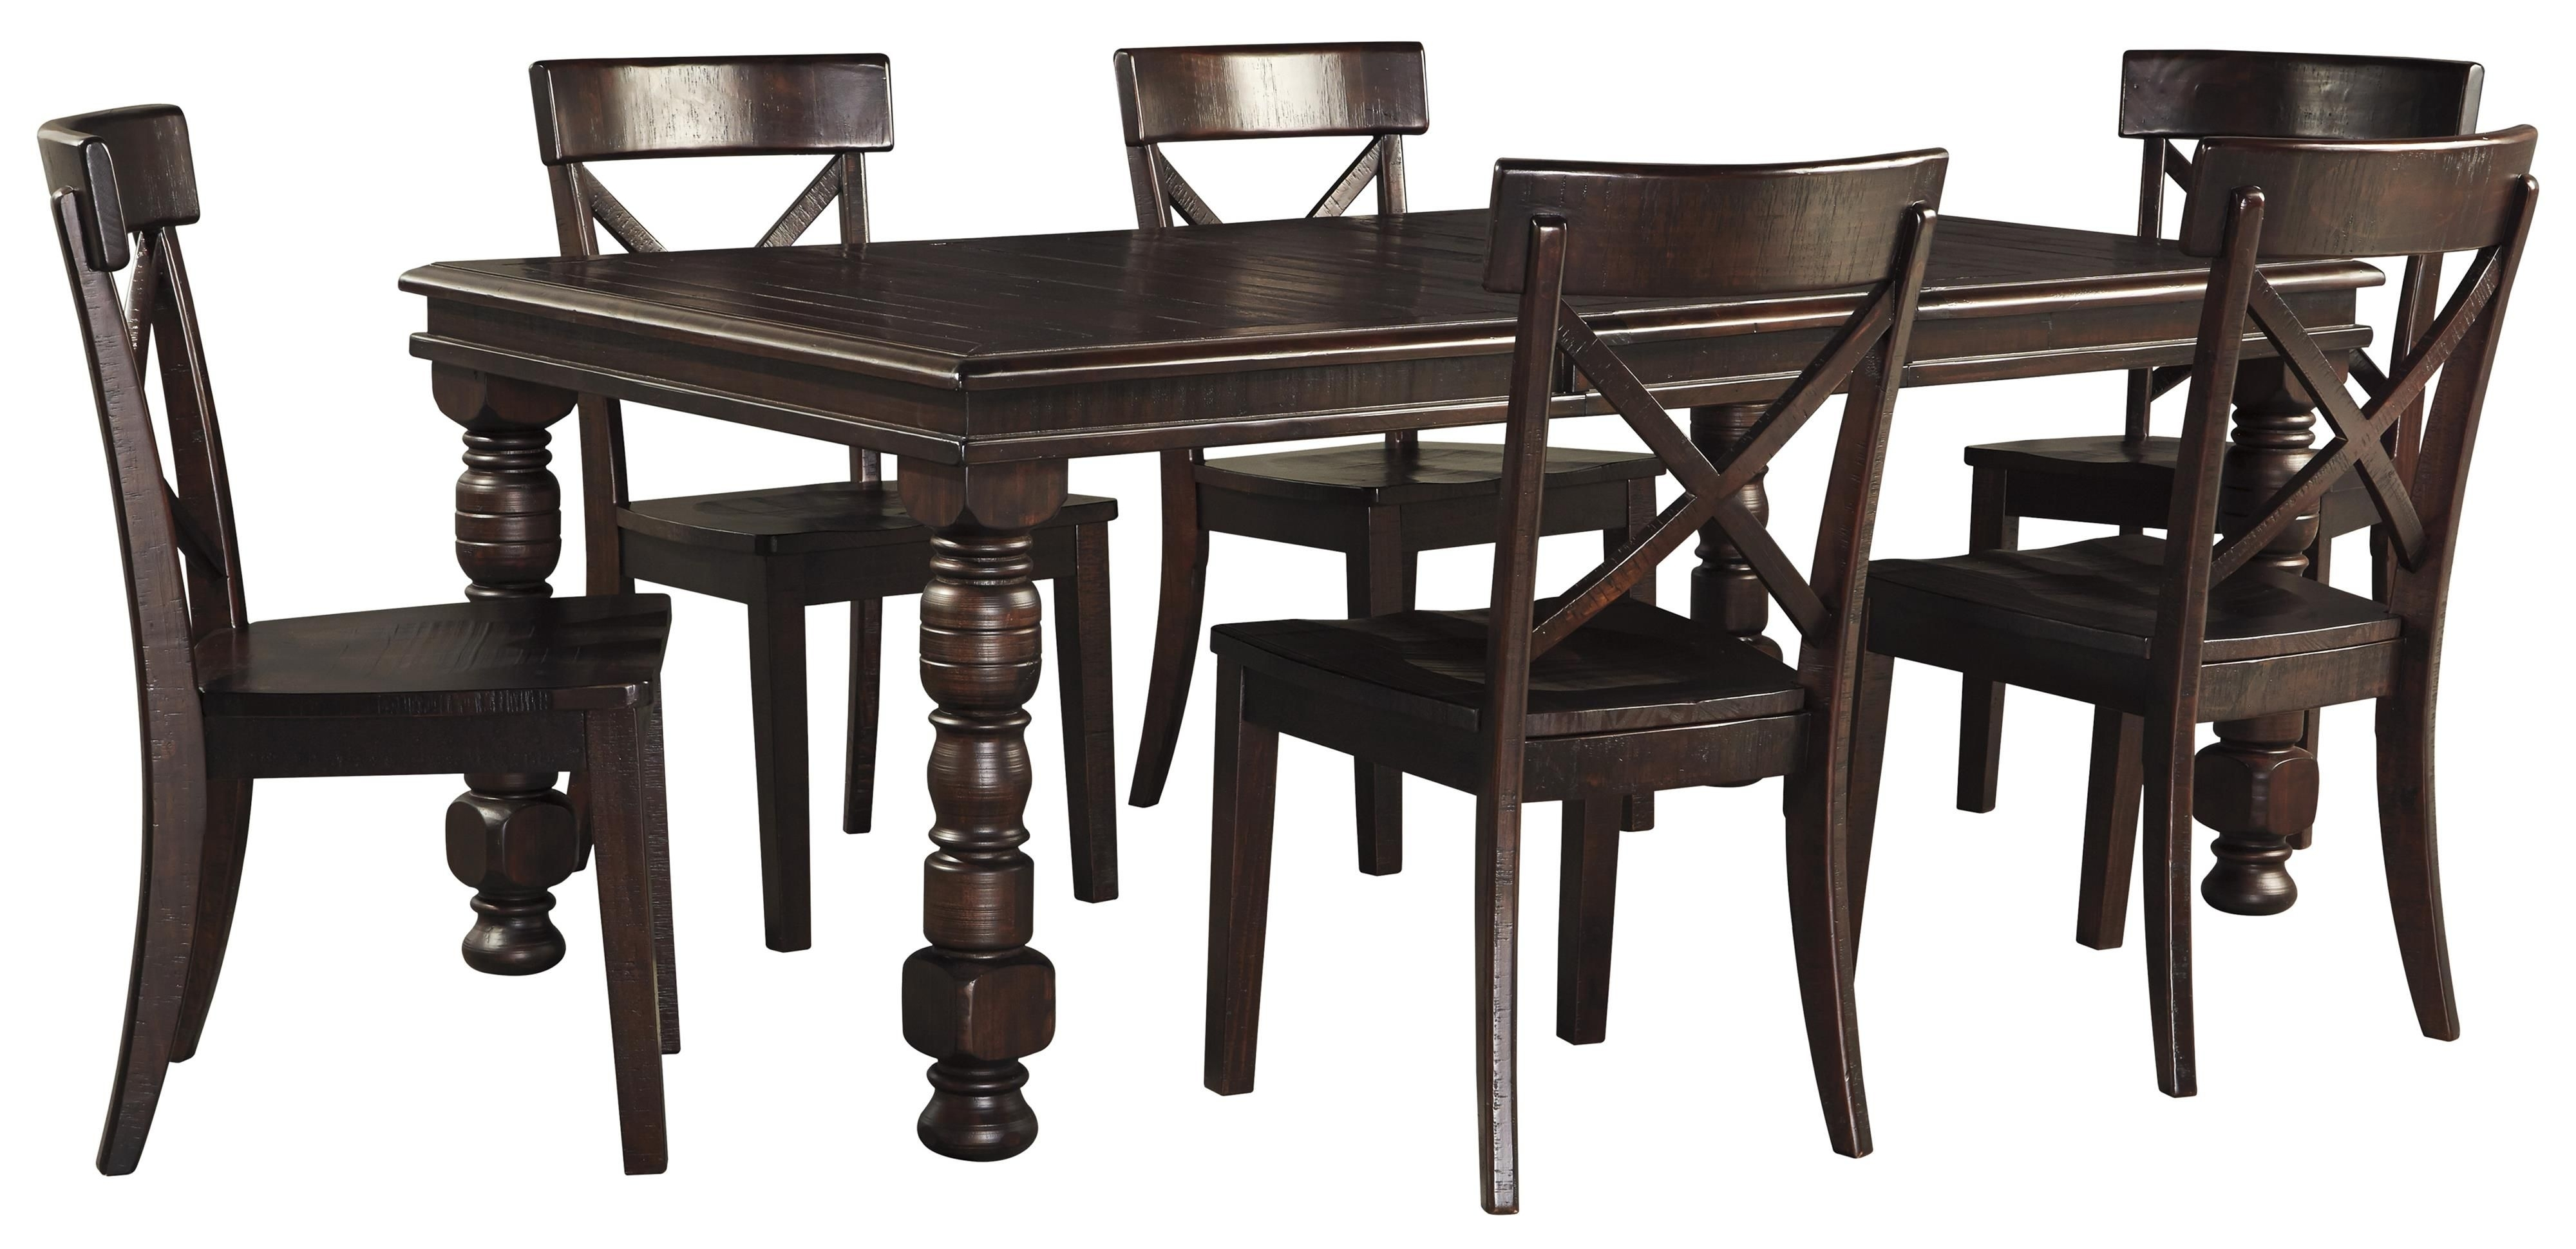 Gerlane 7 Piece Dining Table Setsignature Designashley With Regard To Latest Laurent 7 Piece Rectangle Dining Sets With Wood Chairs (Image 13 of 20)